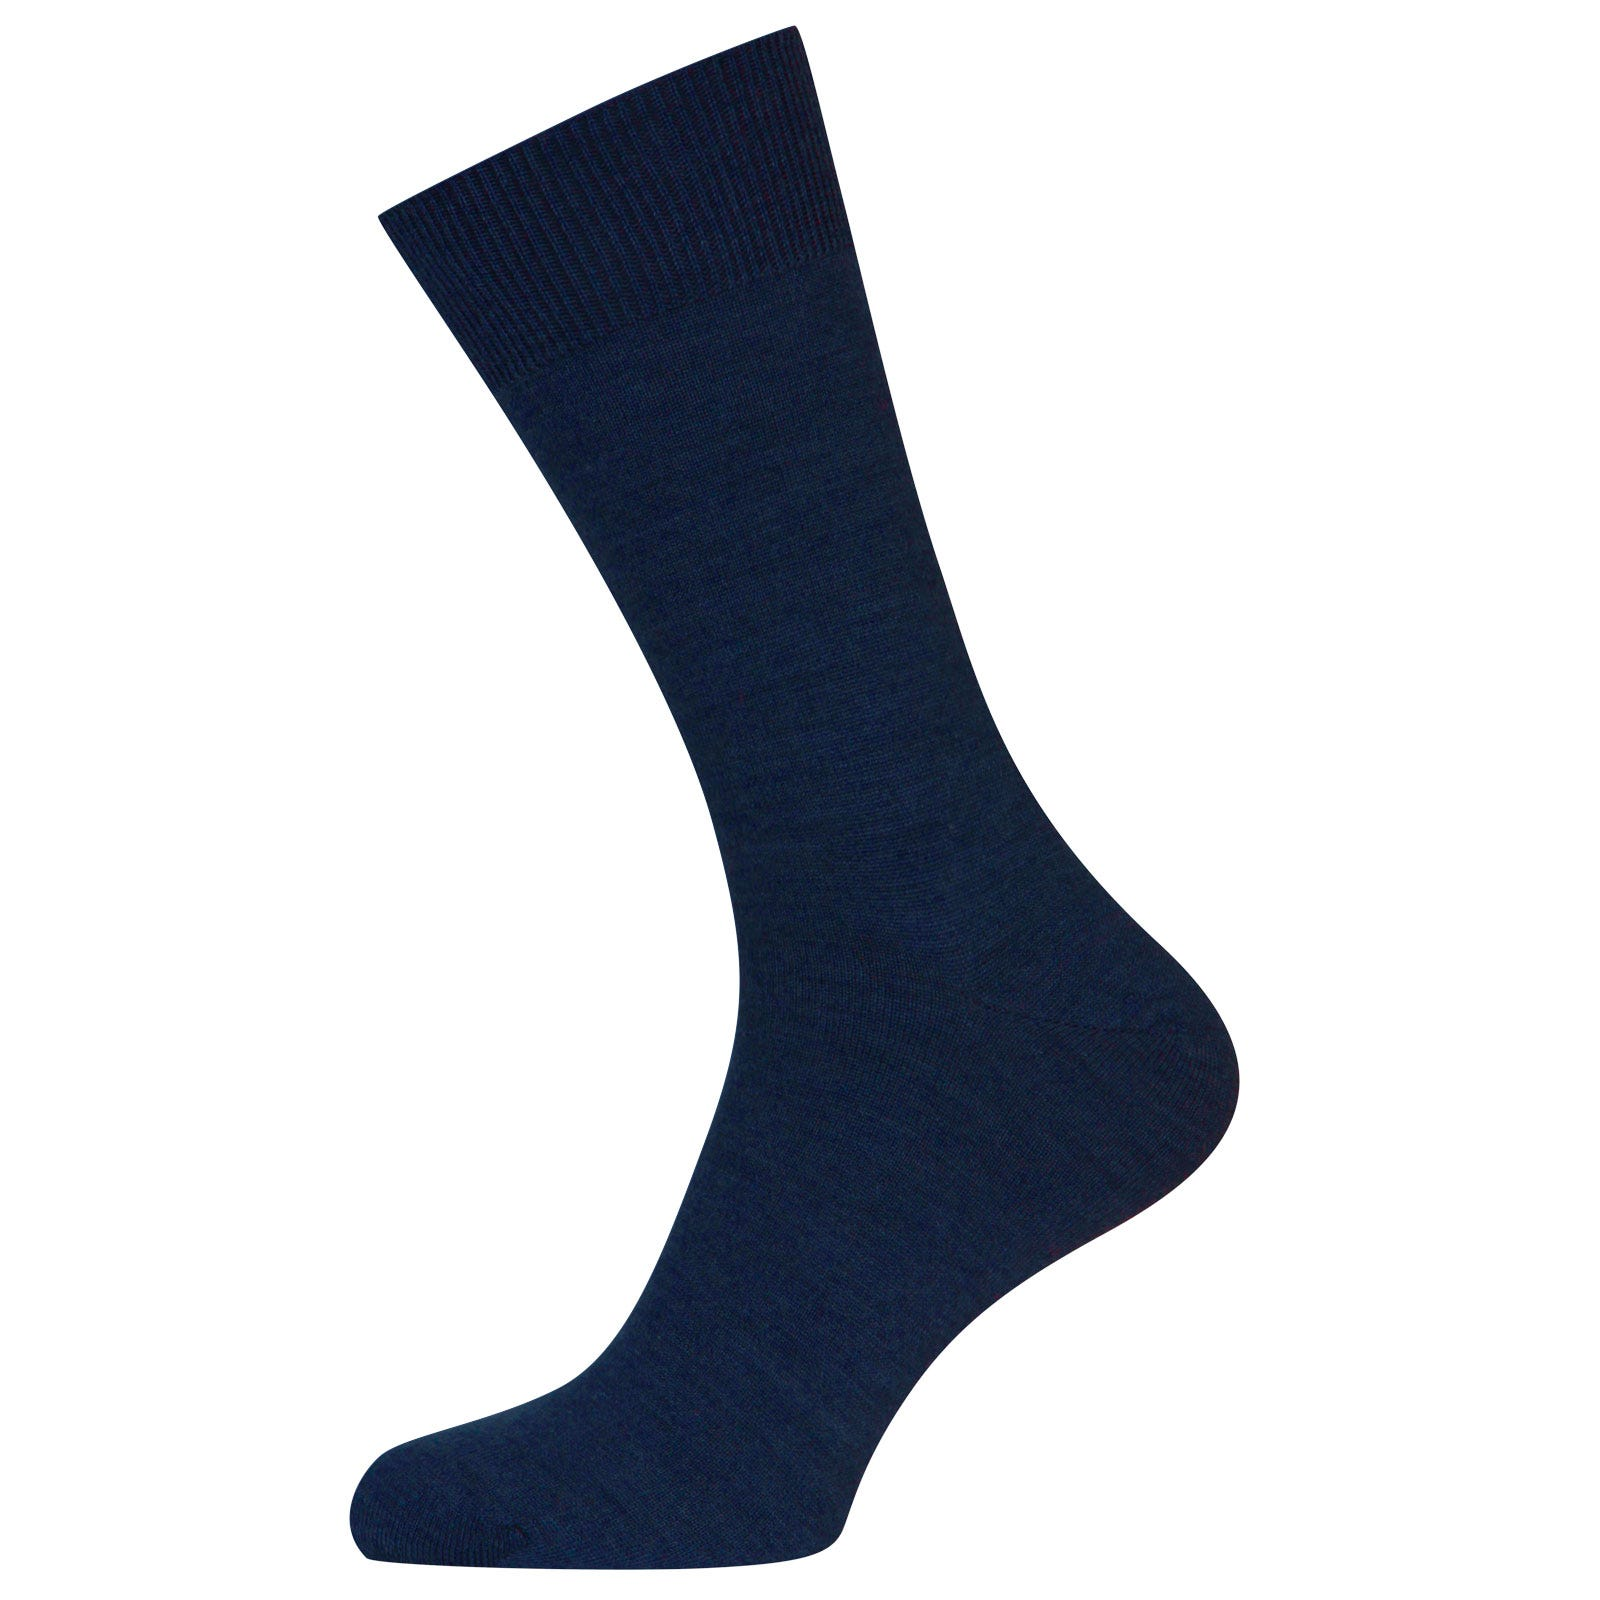 John Smedley Beta Merino Wool Socks in Indigo-S/M